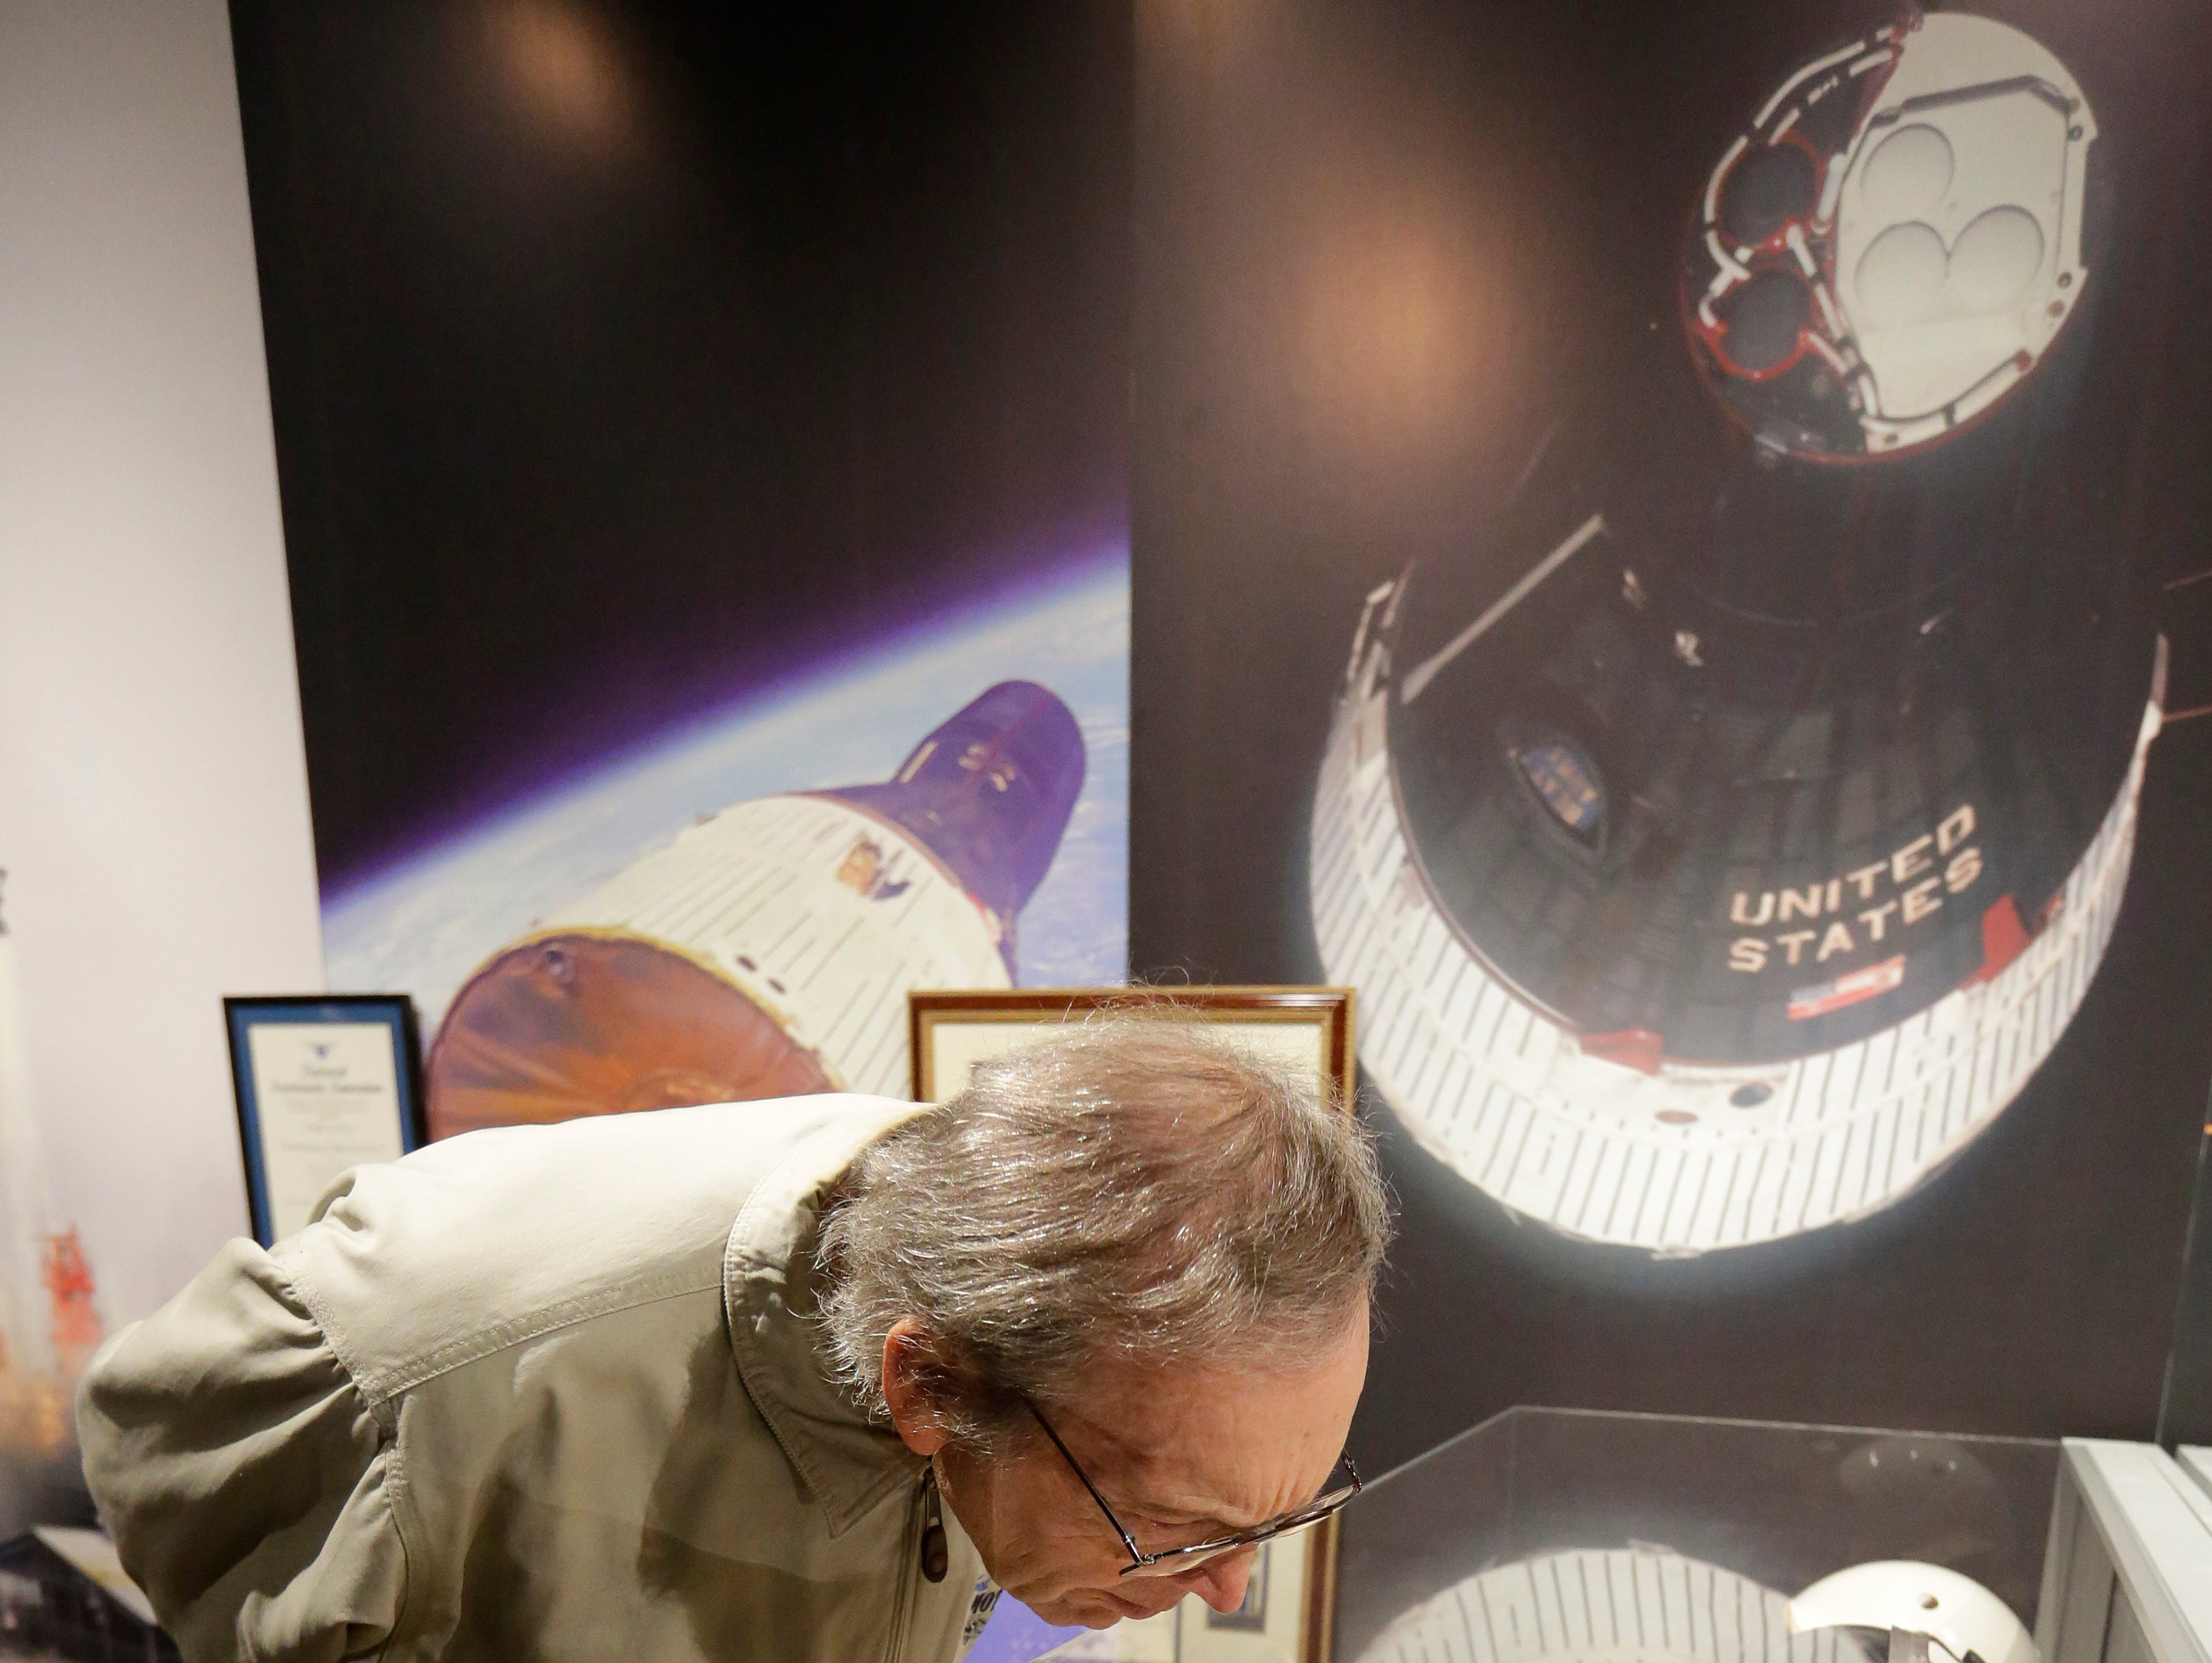 """Don Wokosin looks over some of the artifacts from the collection.  The EAA Aviation Museum in Oshkosh, Wis. has opened """"The Borman Collection: An EAA Member's Space Odyssey,"""" an exhibit that features the personal archives and memorabilia of astronaut Frank Borman, who was on the leading edge of America's space program through the 1960s. The new exhibit was formally opened with a ribbon cutting by Borman on Friday, December 7, 2018.Joe Sienkiewicz/USA Today NETWORK-Wisconsin"""